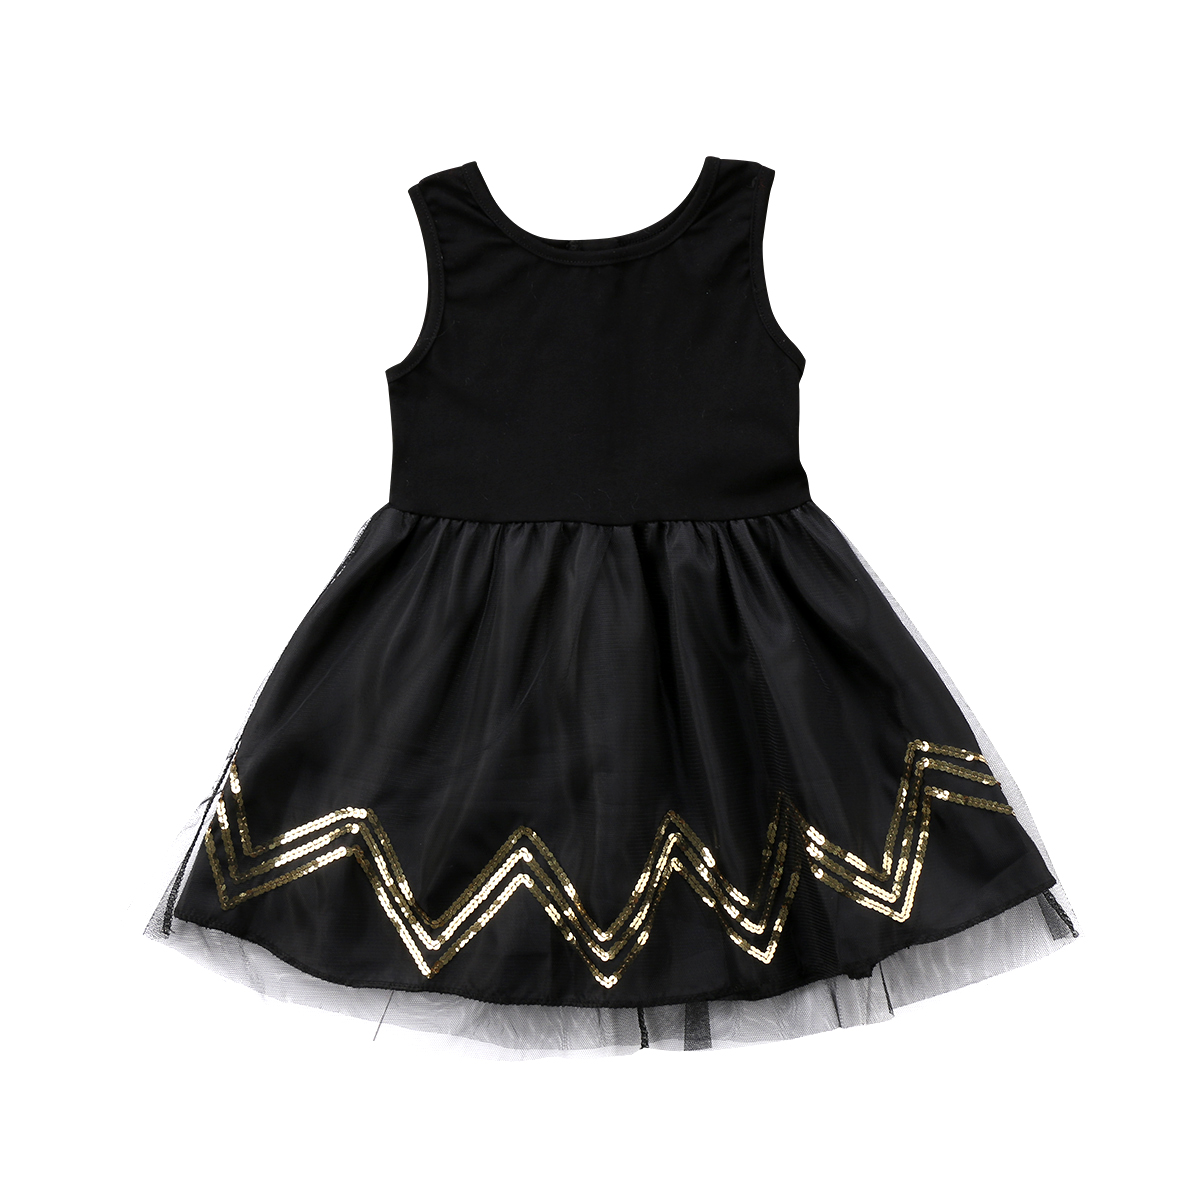 2018 Baby Girls Tutu Dress Lace Sleeveless Black Princess Party Pageant Striped Dresses Kids Casual Sundress Summer Clothes